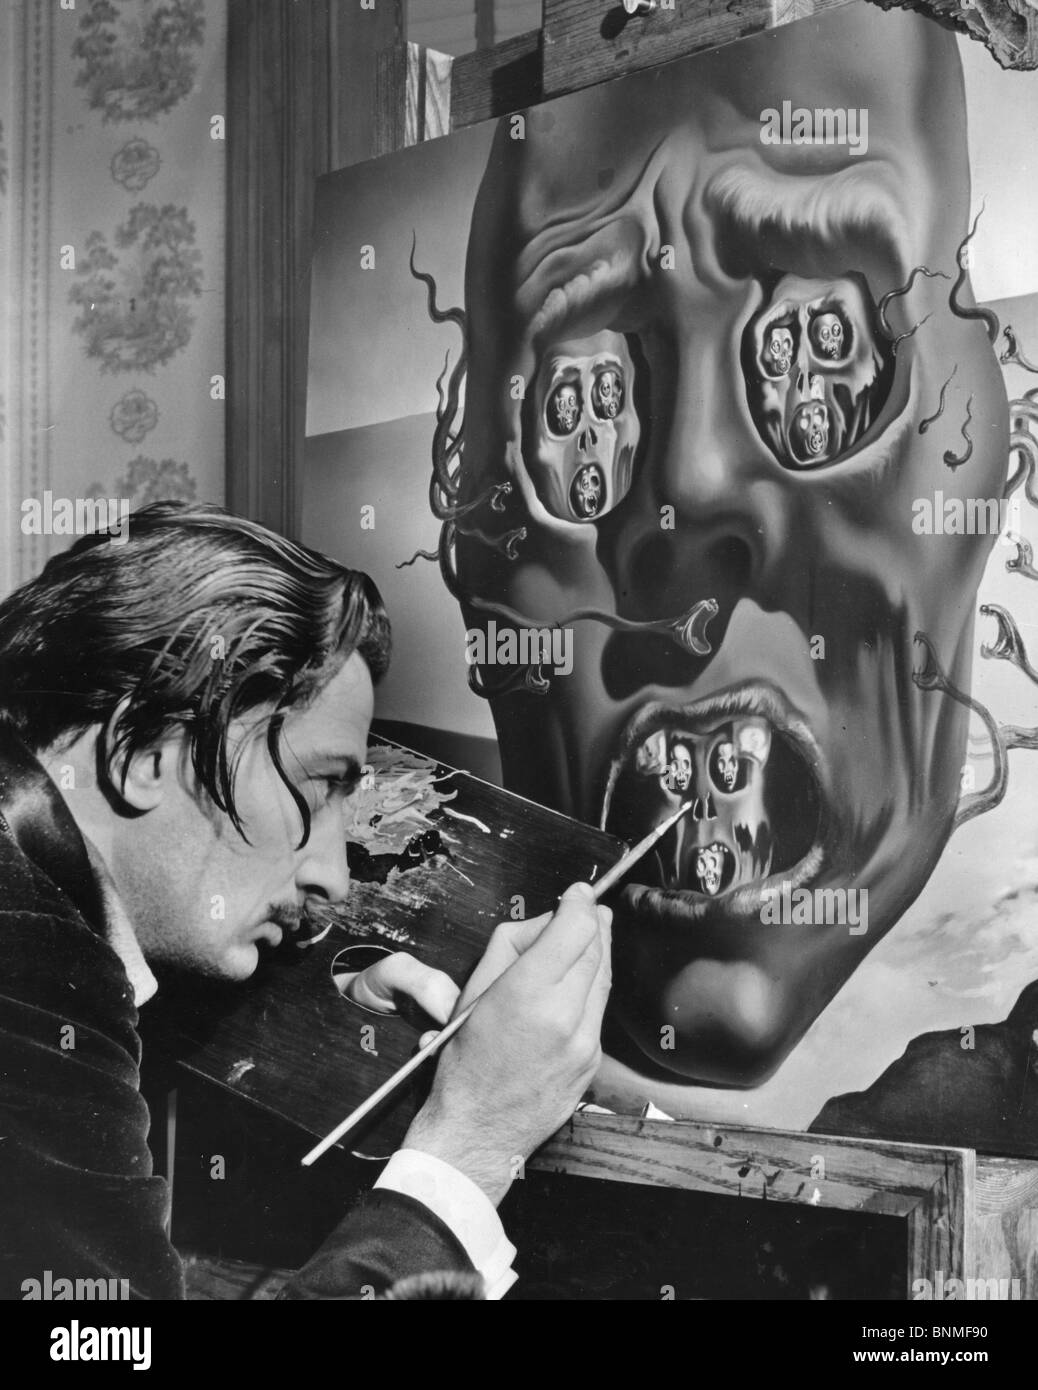 SALVADOR DALI  (1984-89) Spanish artist working on his painting The Face of War in the US in 1940 - see Description Stock Photo